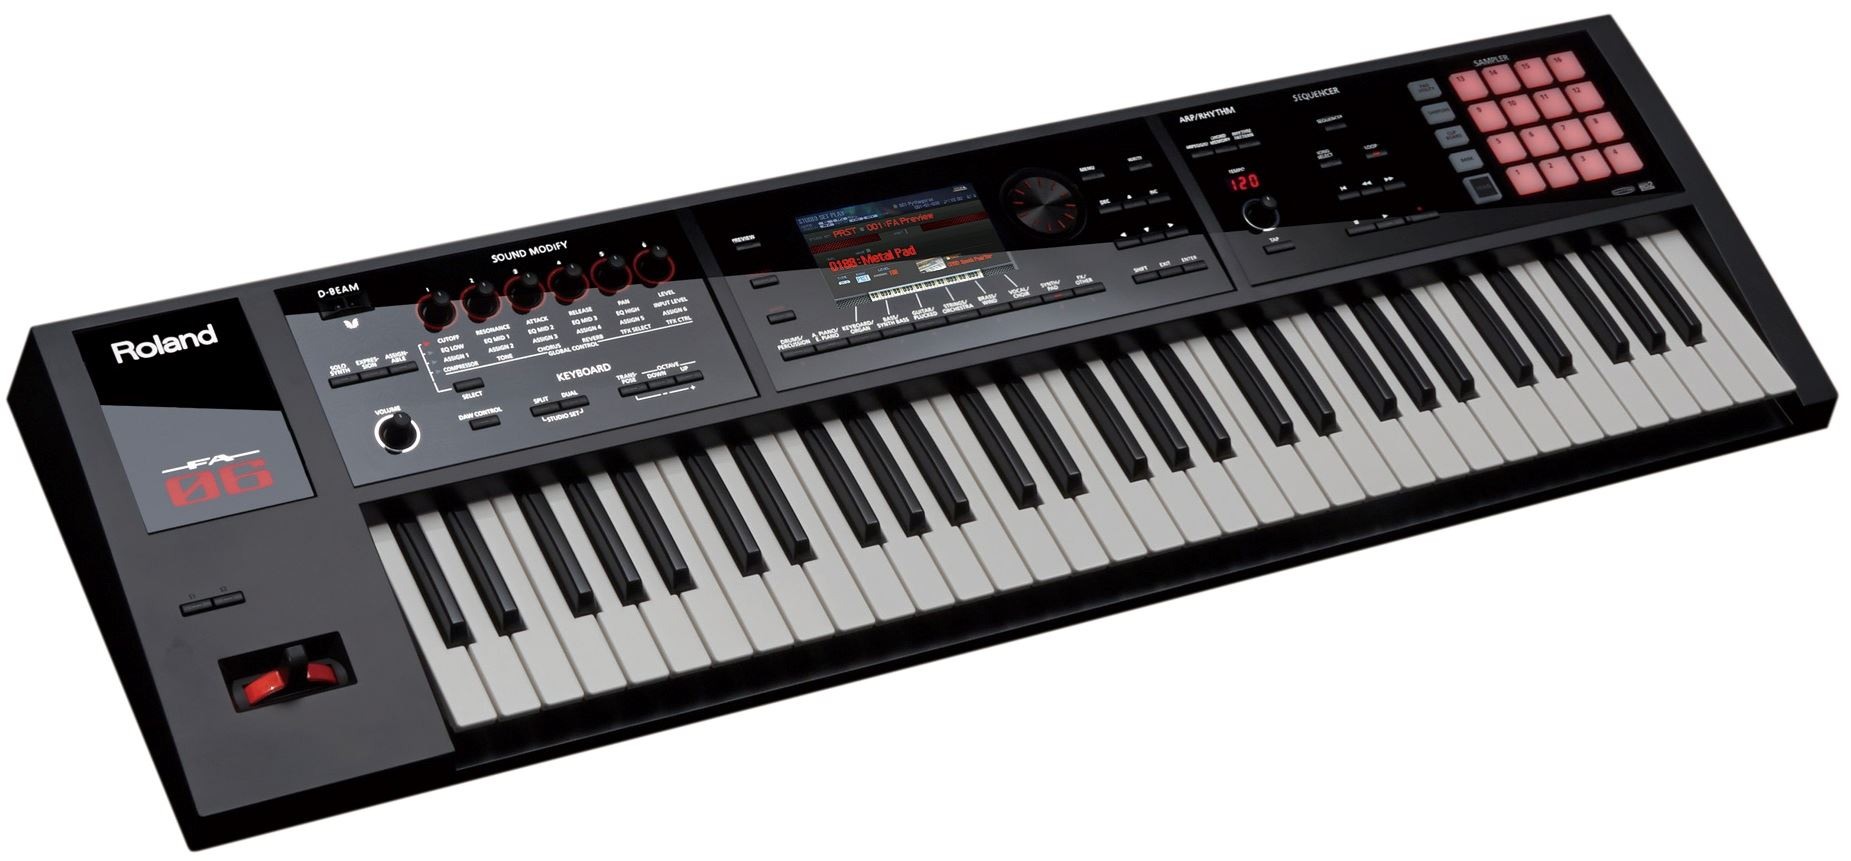 Roland workstation keyboard